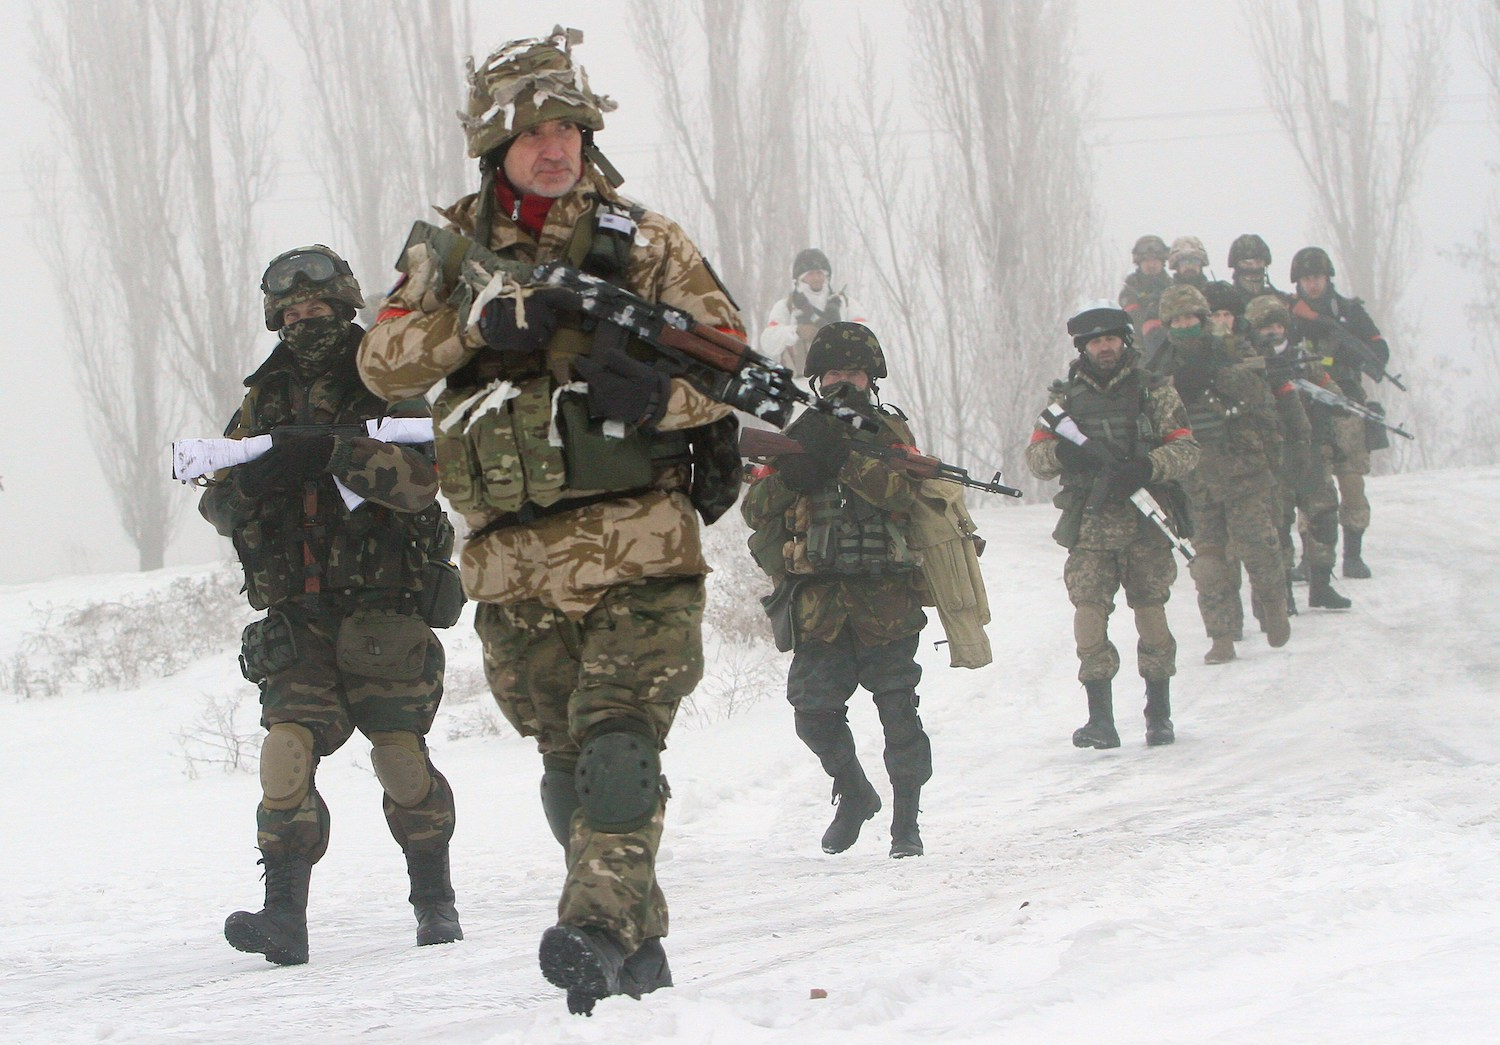 It's Time for Ukraine to Let the Donbass Go